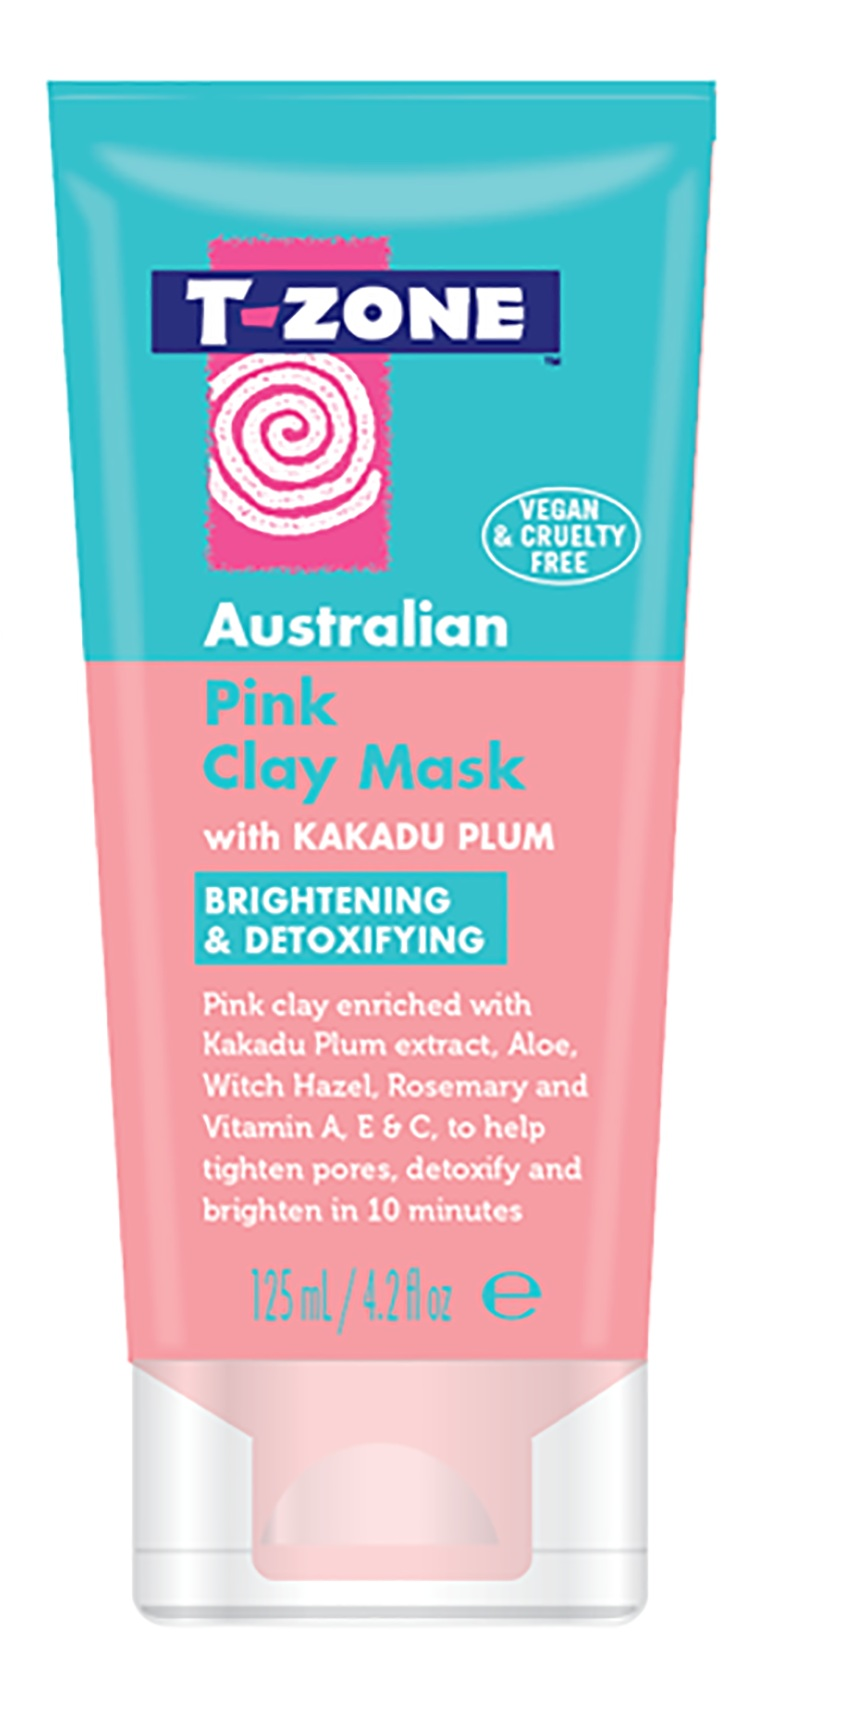 T-zone Australian Pink Clay Mask.png